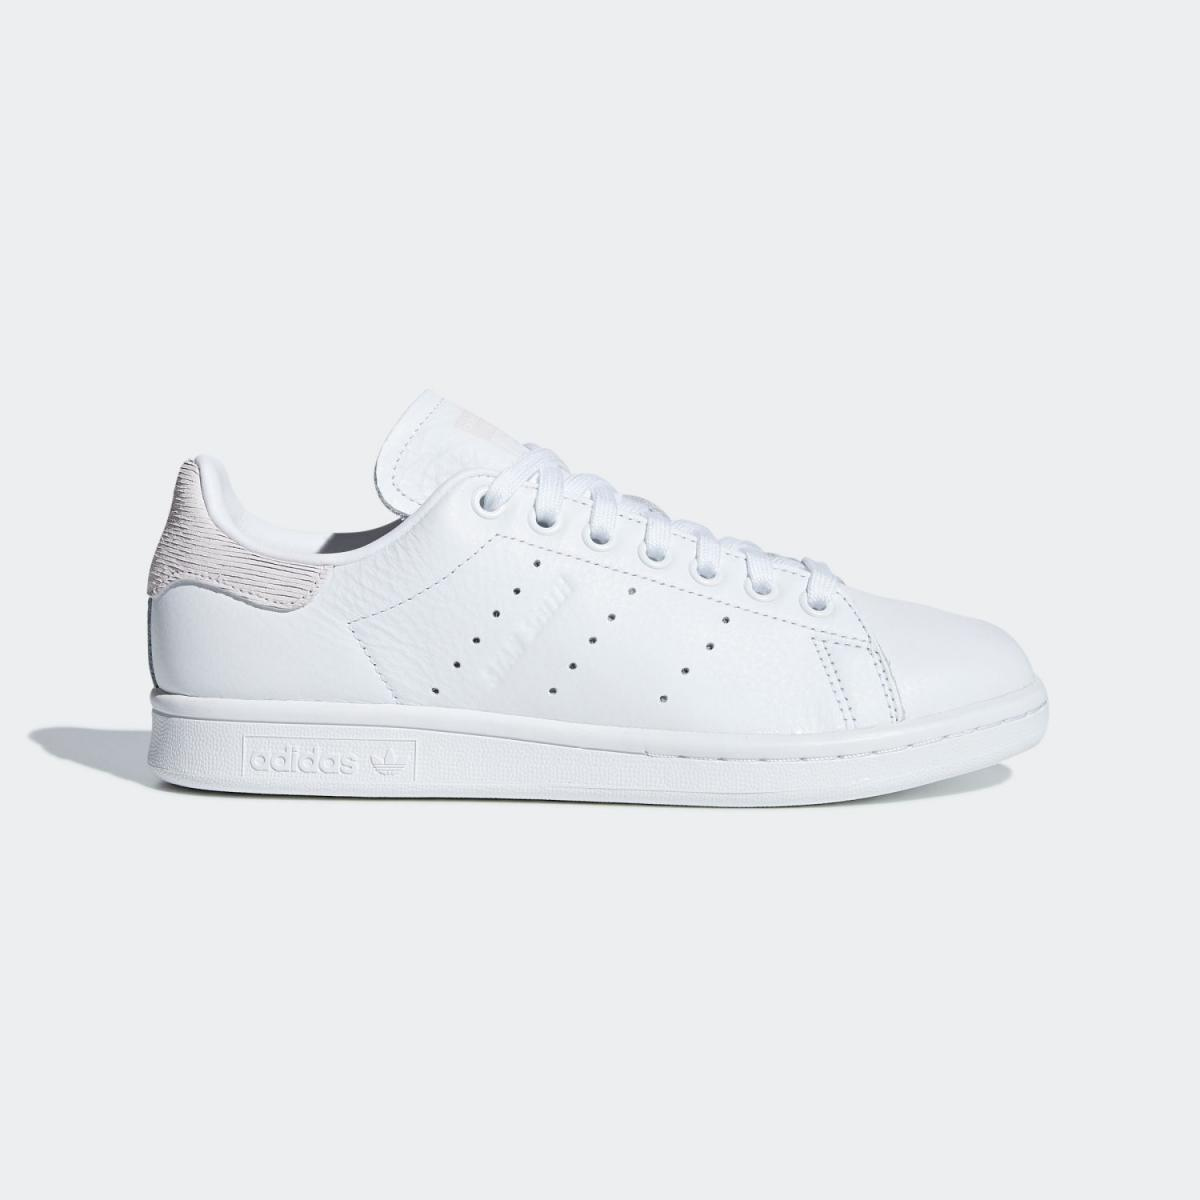 520c361c0e1 All articles! 2 20 17 00 - 2 25 16 59 Adidas adidas Stan Smith  Stan Smith  W  lady s B41625 shoes nature leather rubber bottom